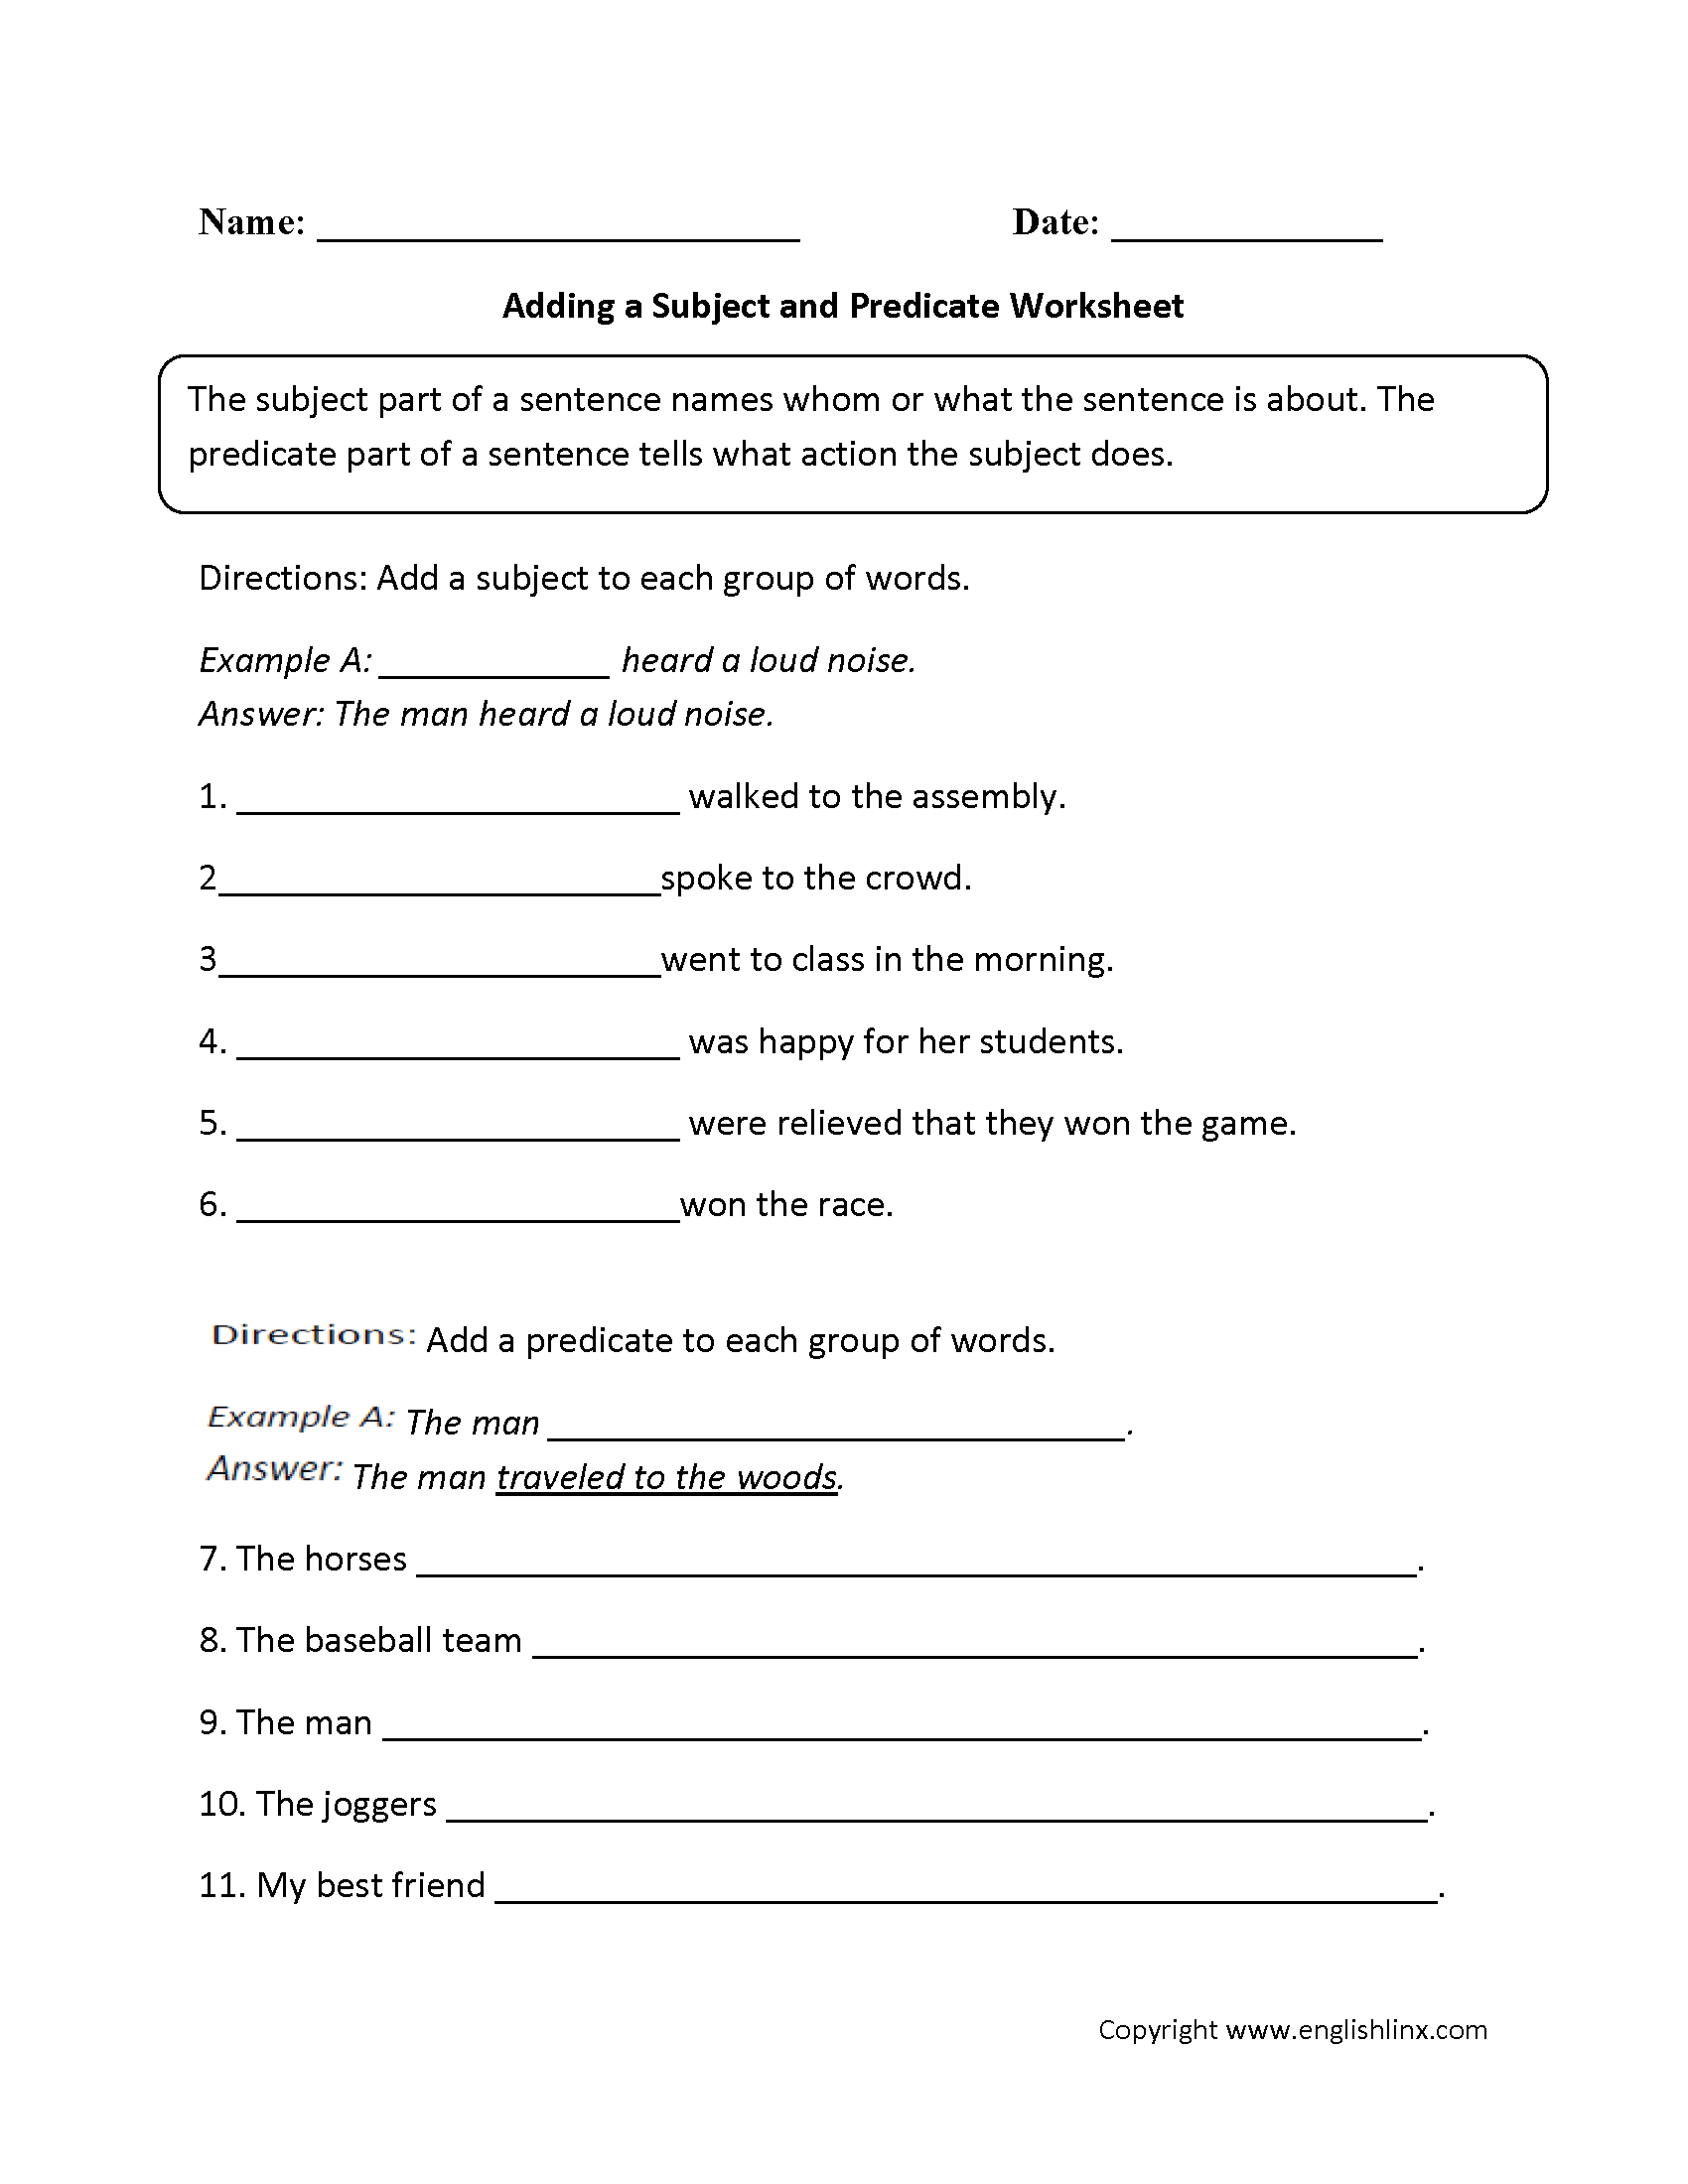 worksheet Subject Predicate Worksheets englishlinx com subject and predicate worksheets adding a subejct worksheet